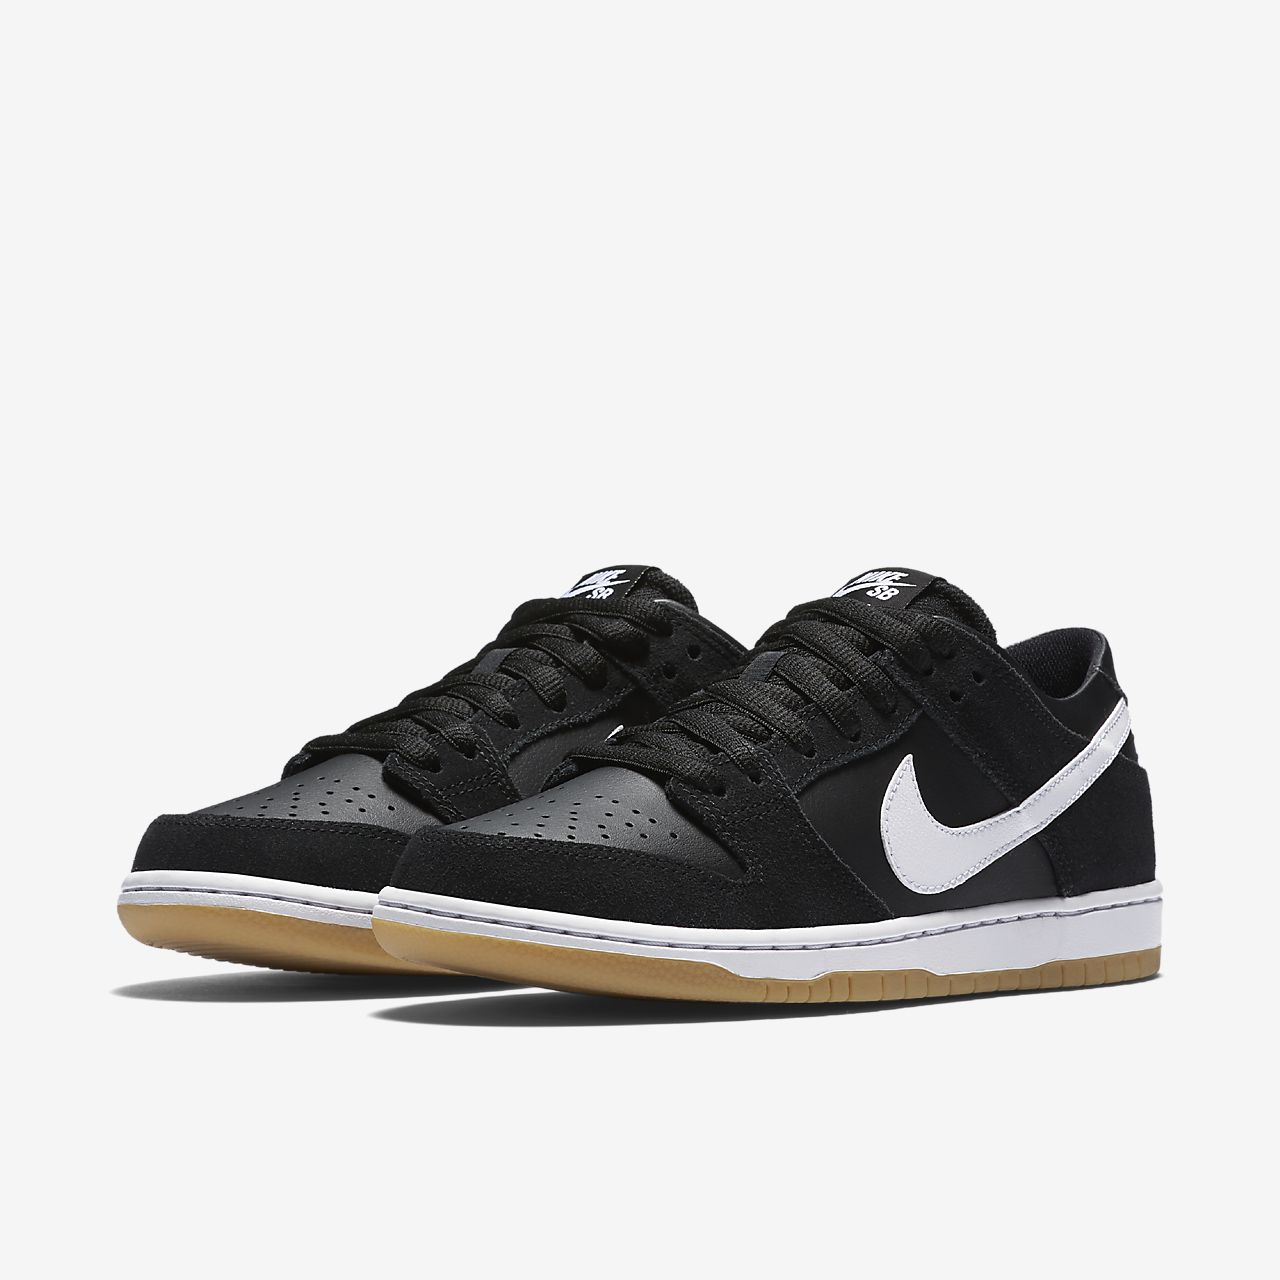 nike dunk free price philippines infant